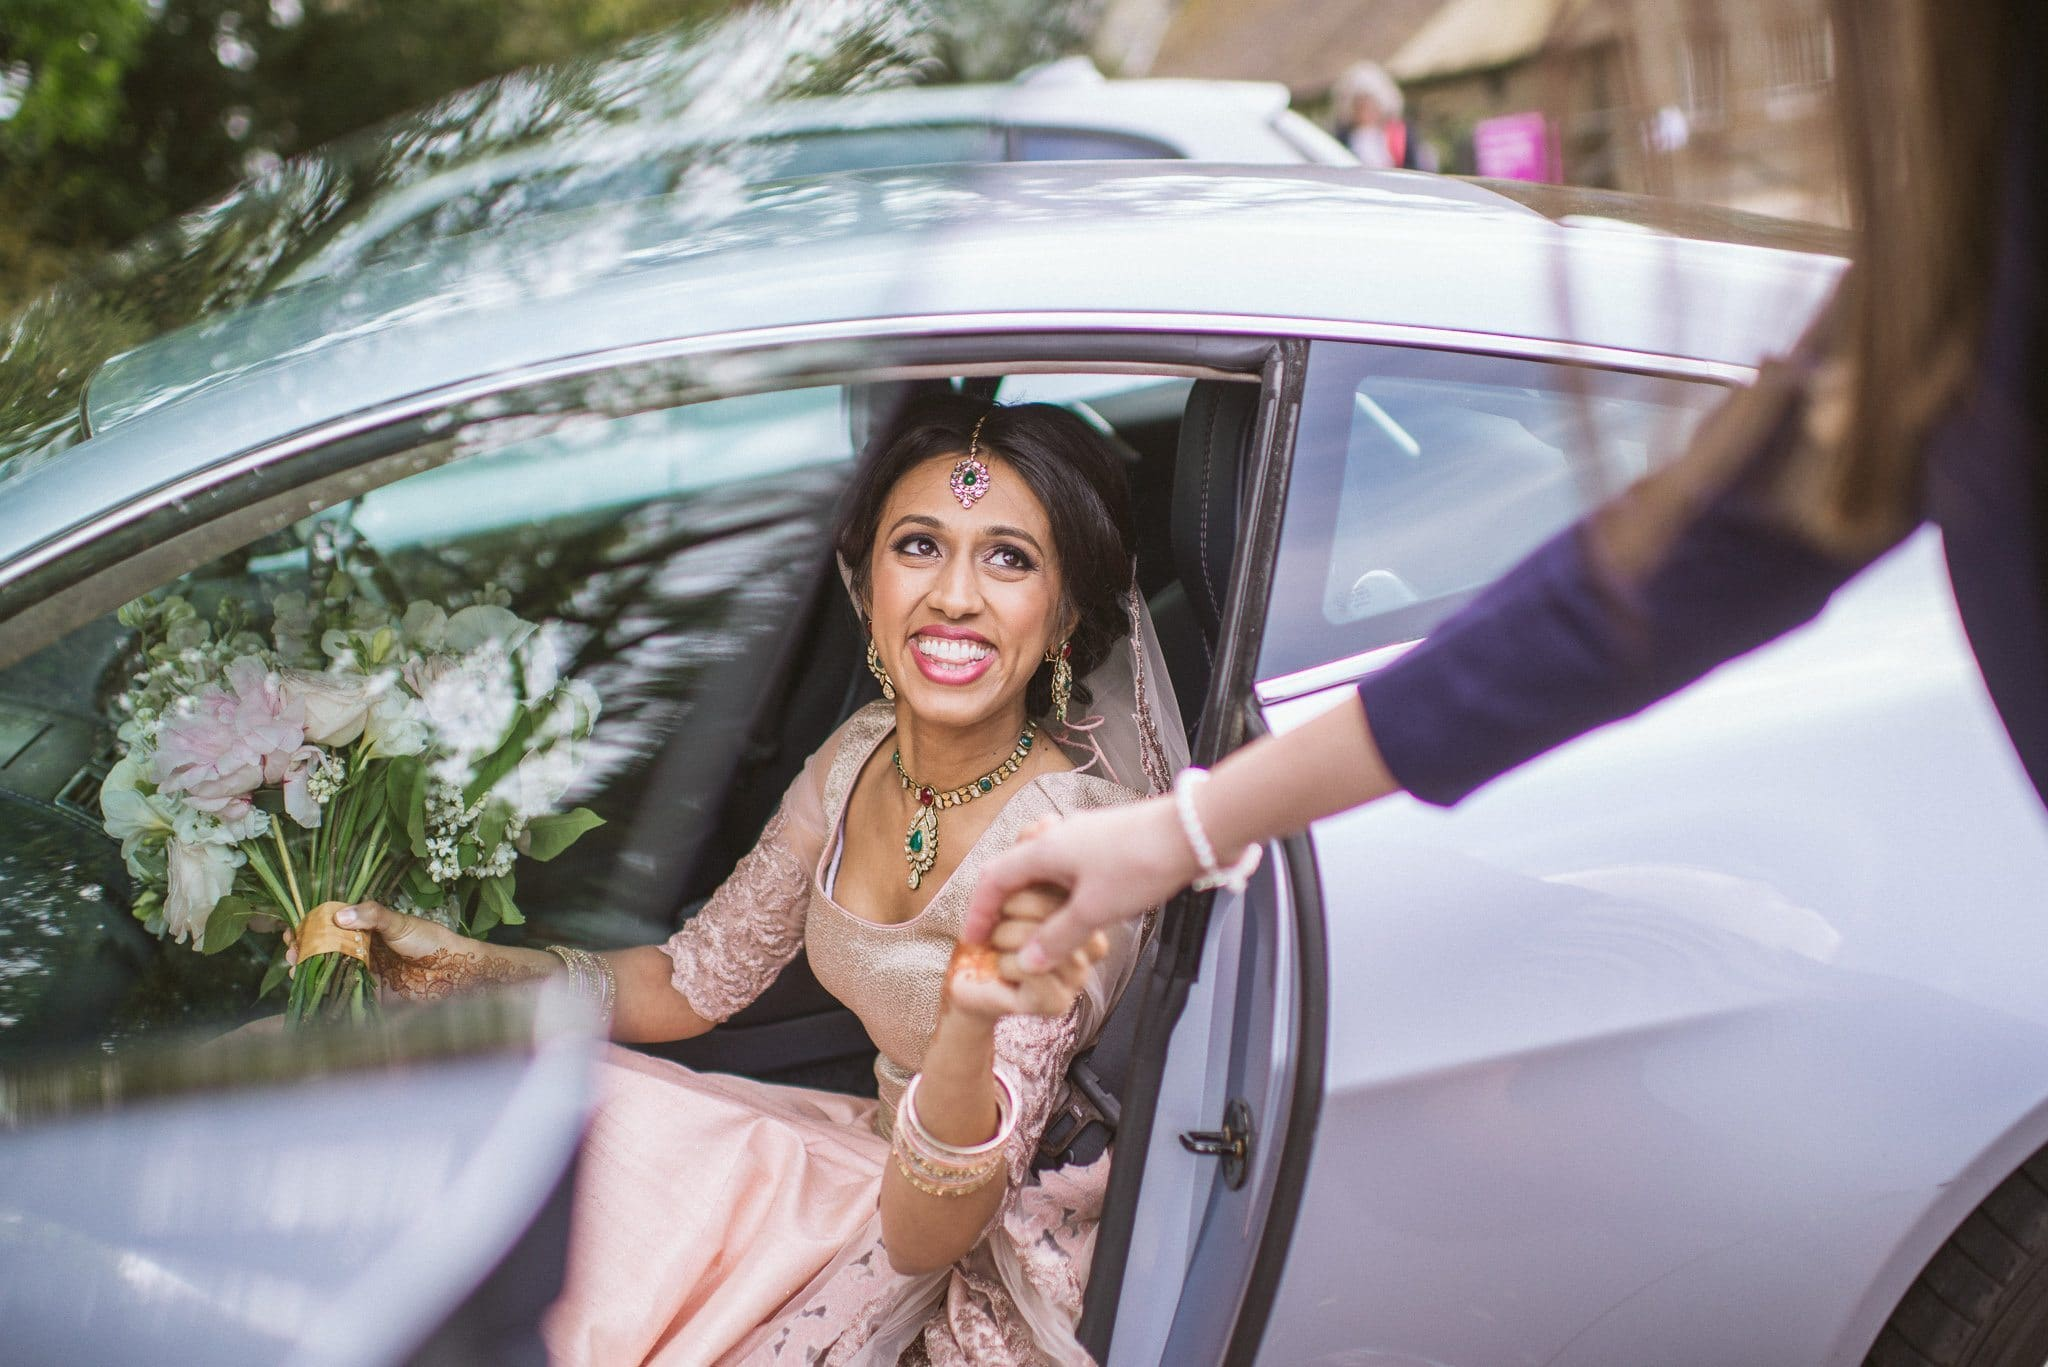 Sorayya takes a friend's hand as she exits the car at her Colourful Muslim Fulham Palace Wedding